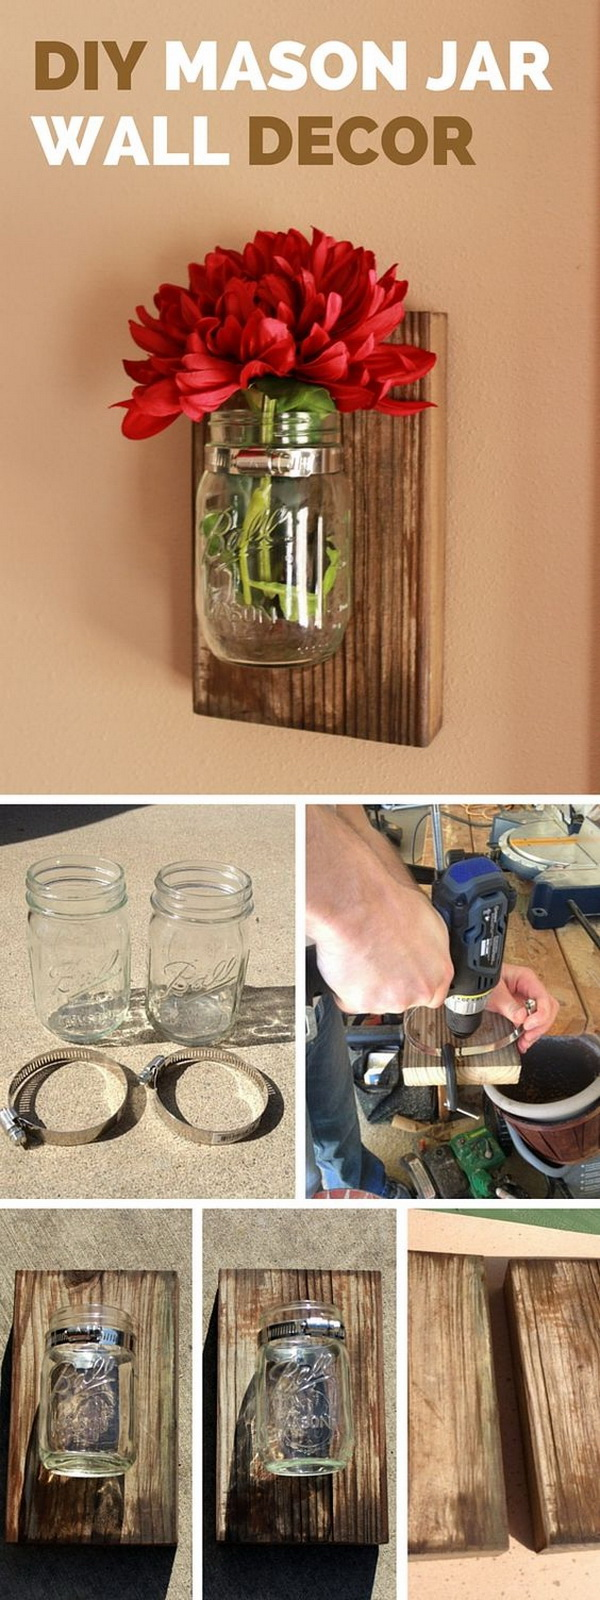 DIY Mason Jar Wall Decor.